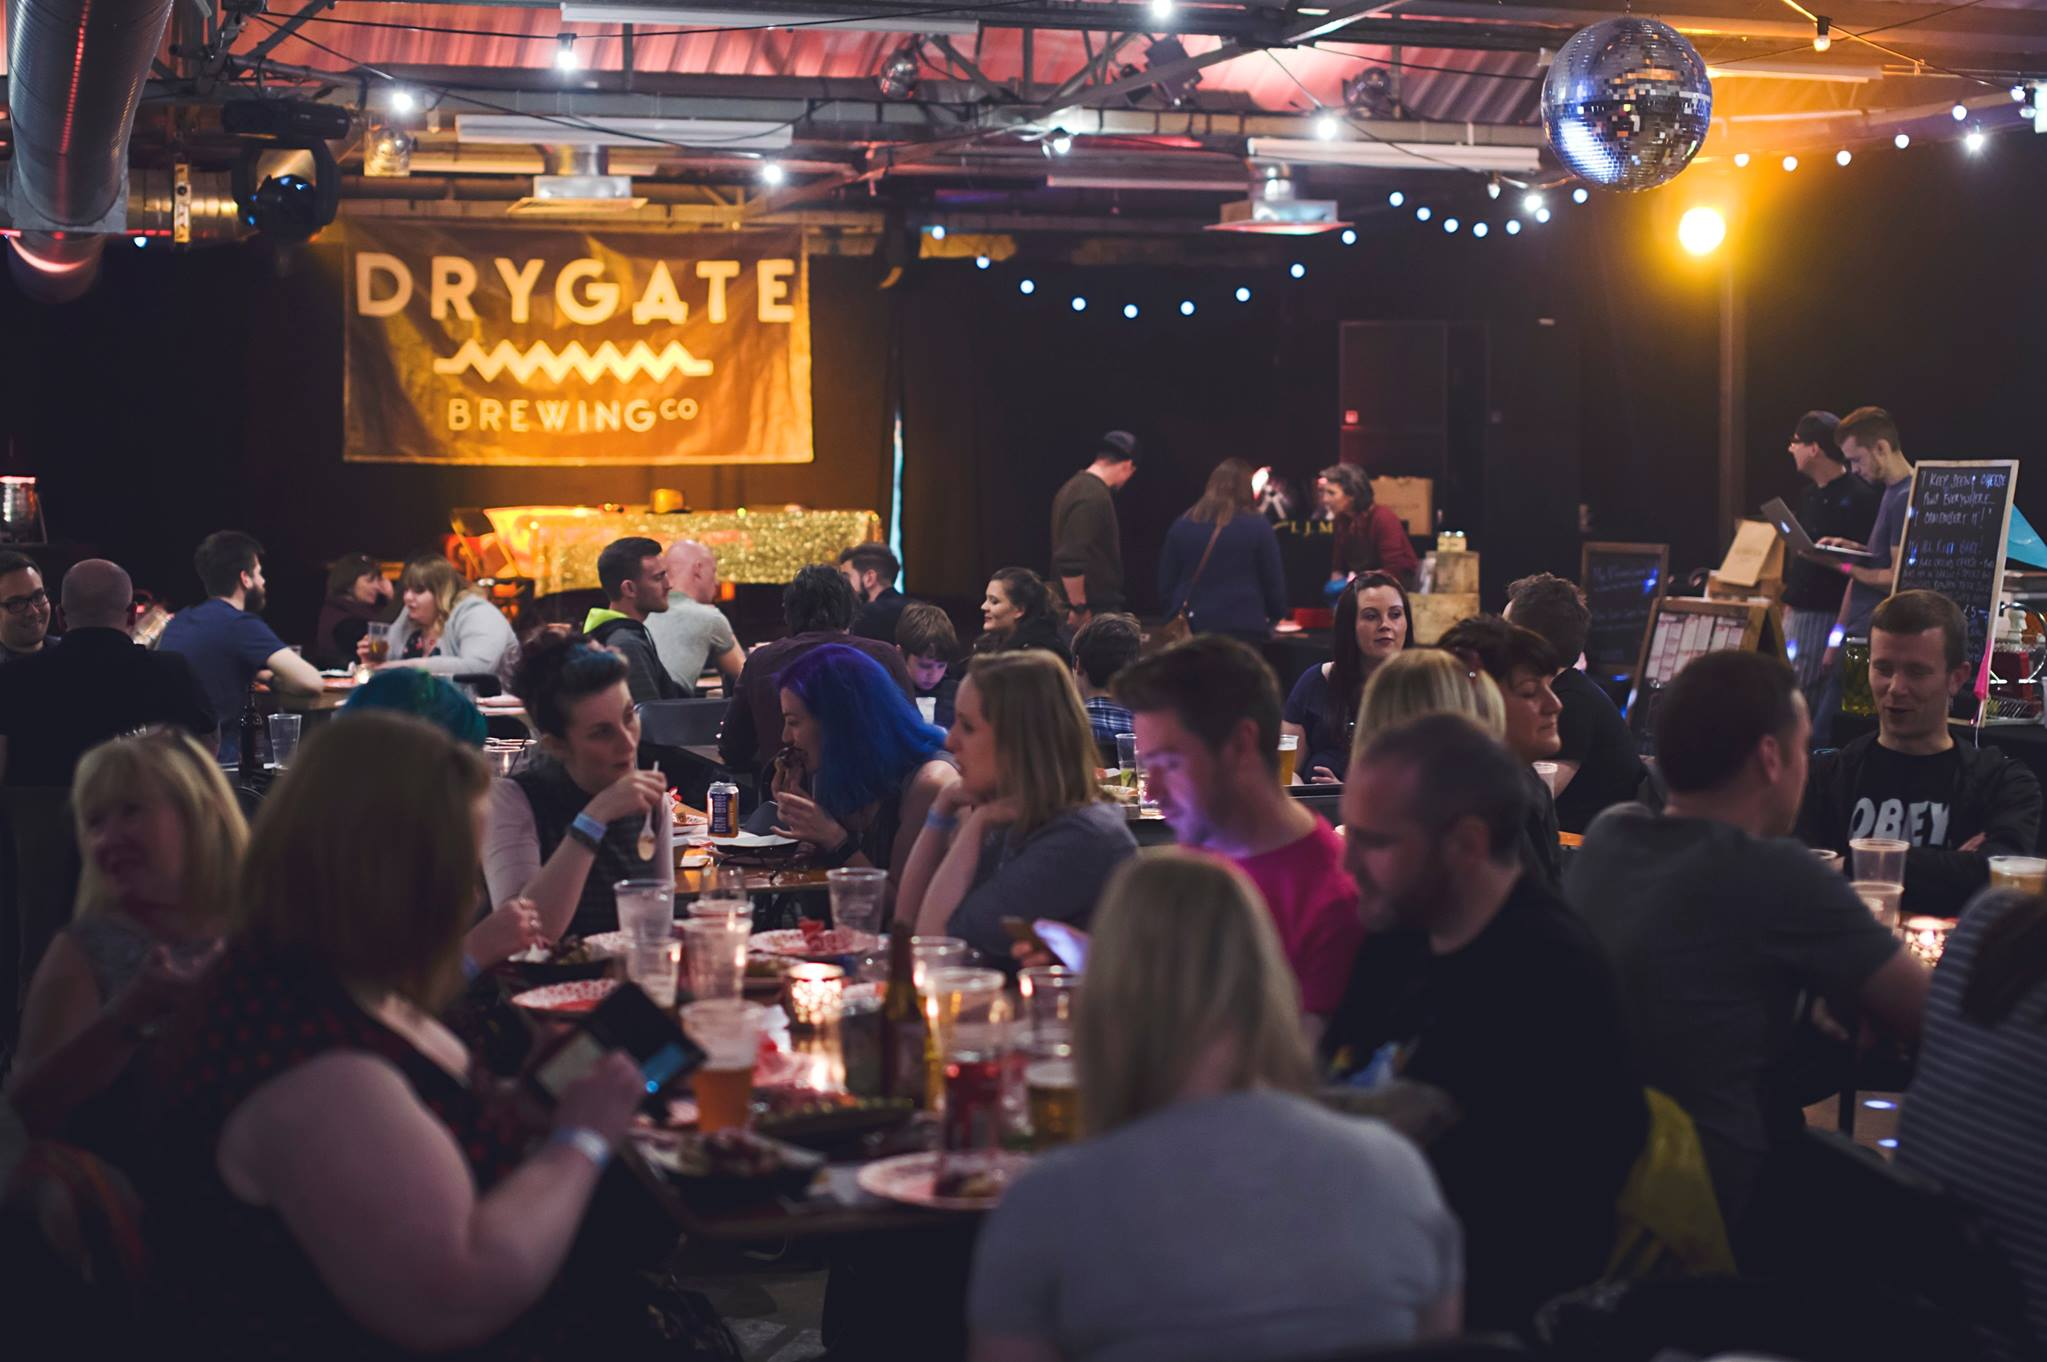 Scotland's First Cheese Toastie Festival at Drygate Glasgow